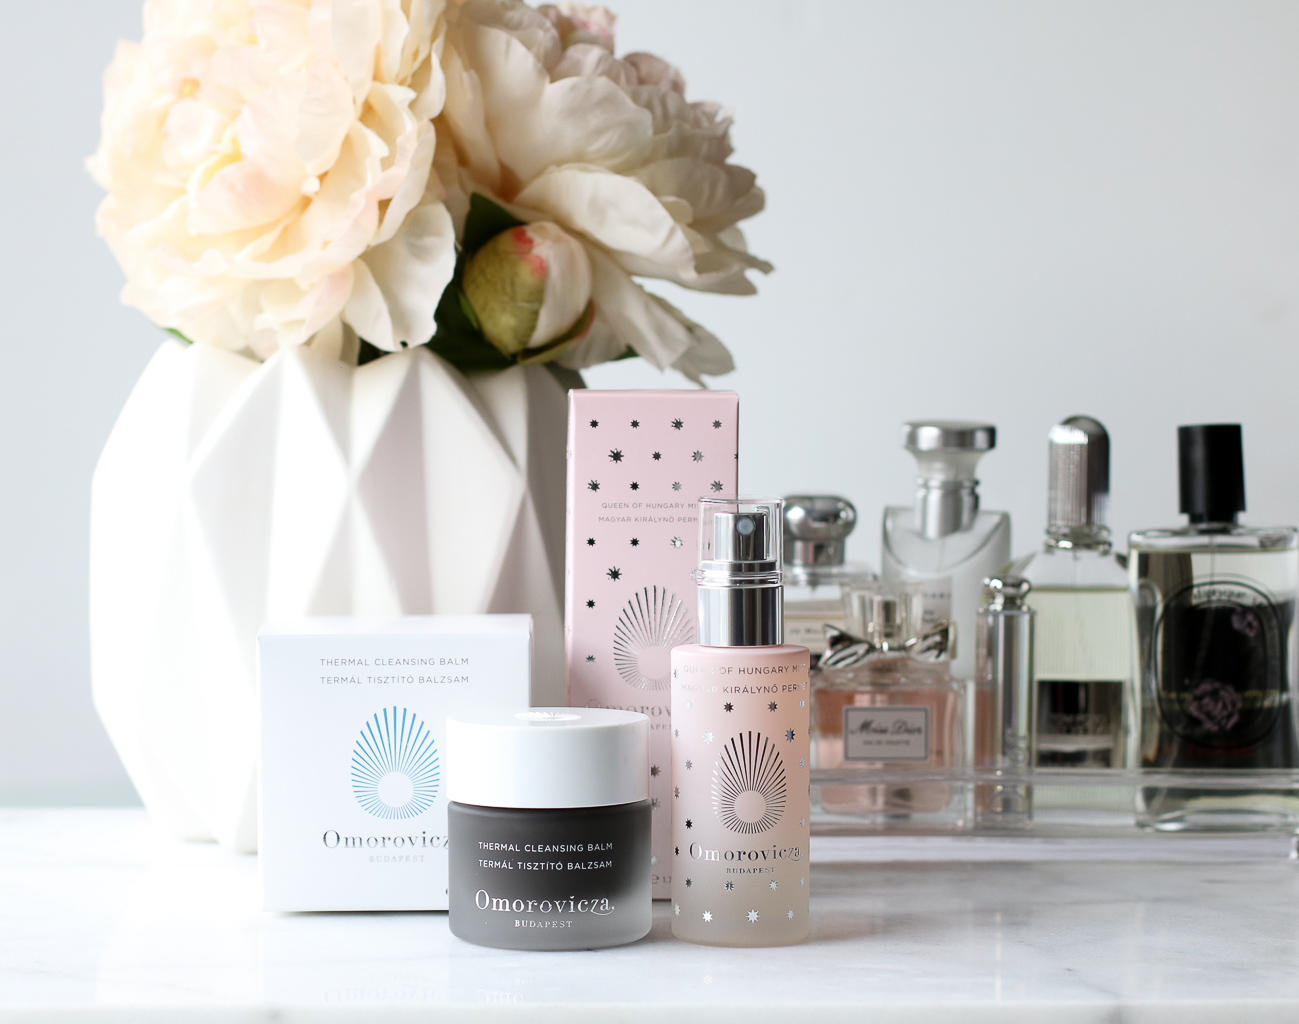 The Best Cleansing Balm and Facial Mist For Dry Skin - Omorovicza | Style Domination